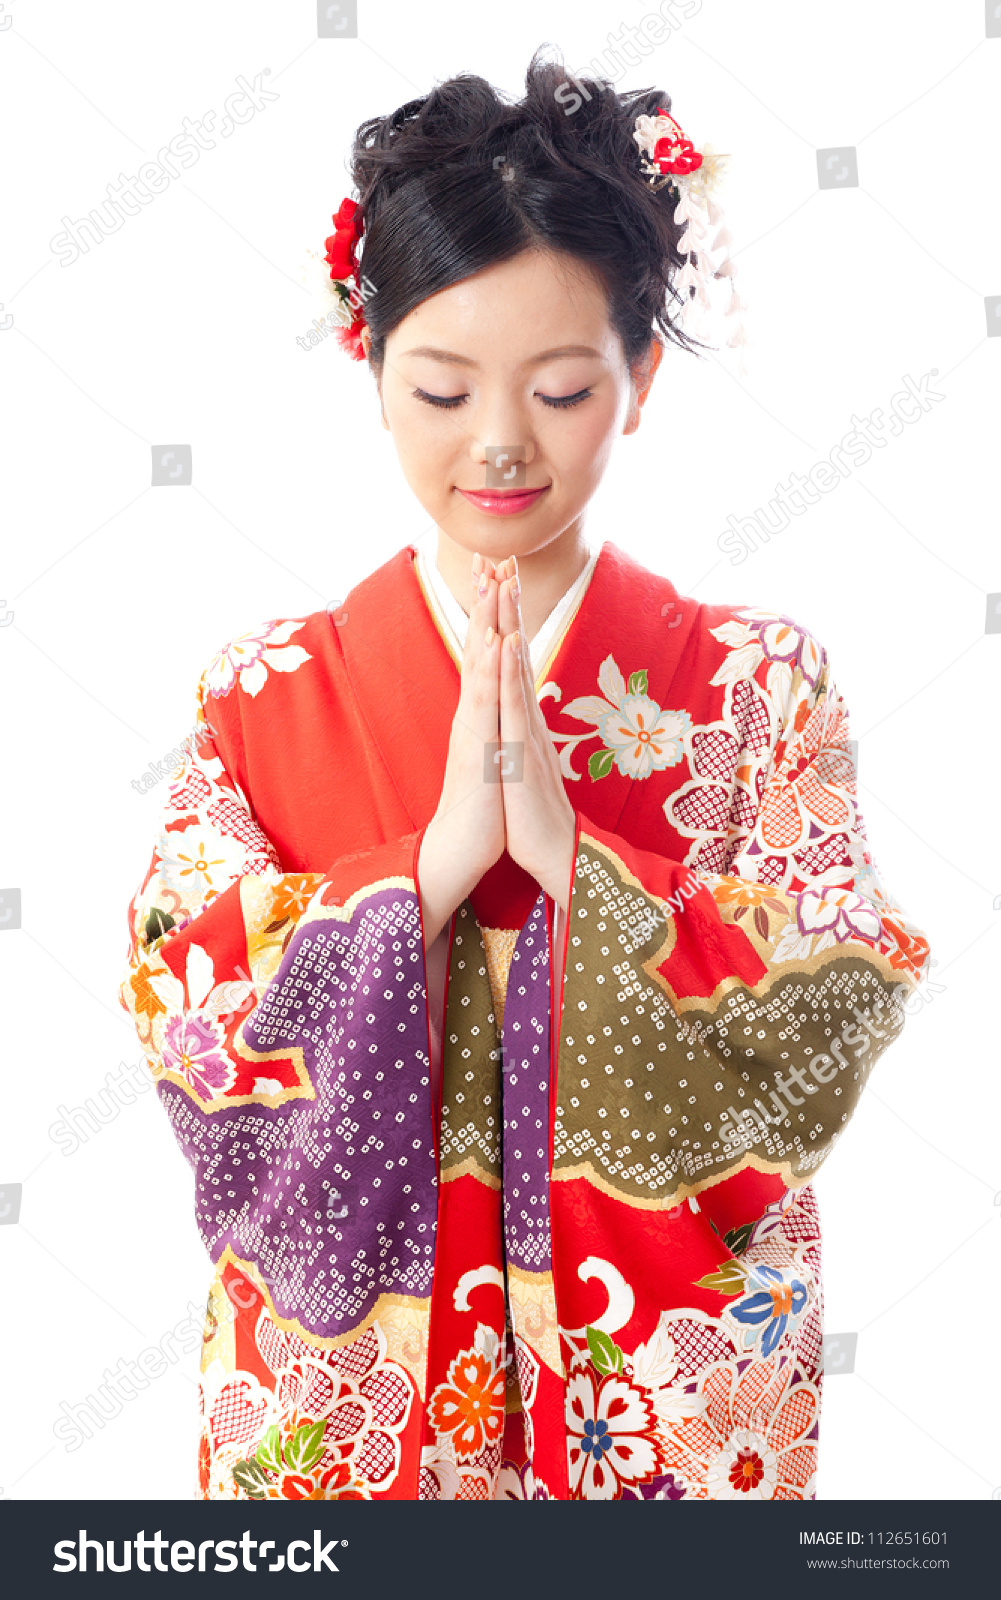 japanese girl wearing kimono - photo #36